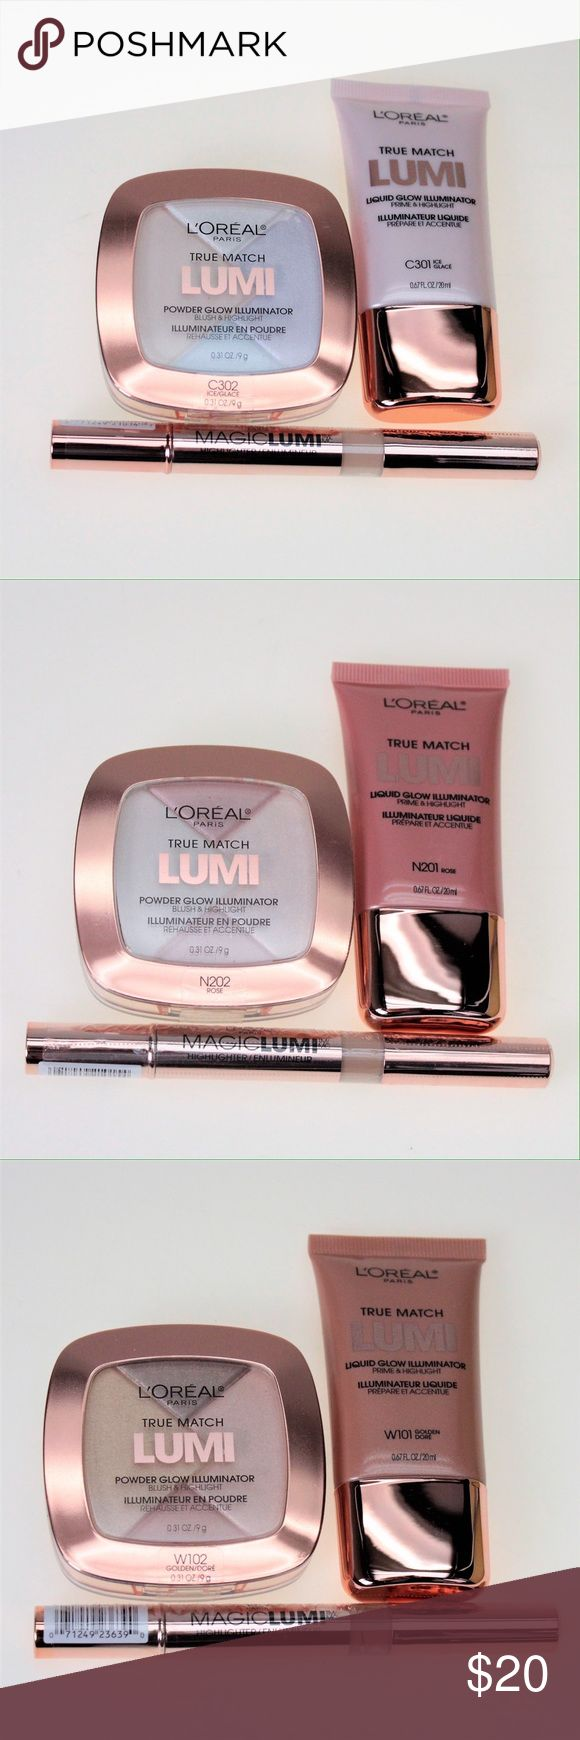 HOST PICK L'Oreal Lumi Face Set All sets are brand new and are still sealed as shown in the last photo.  Light Set: SOLD OUT Medium Set: Medium Magic Lumi Highlighter Stick, N201 Rose Liquid Glow Illuminator, N202 Rose Powder Glow Illuminator. Dark Set: Deep Magic Lumi Highlighter Stick, W101 Golden Liquid Glow Illuminator, W102 Golden Powder Glow Illuminator. L'Oreal Makeup Luminizer